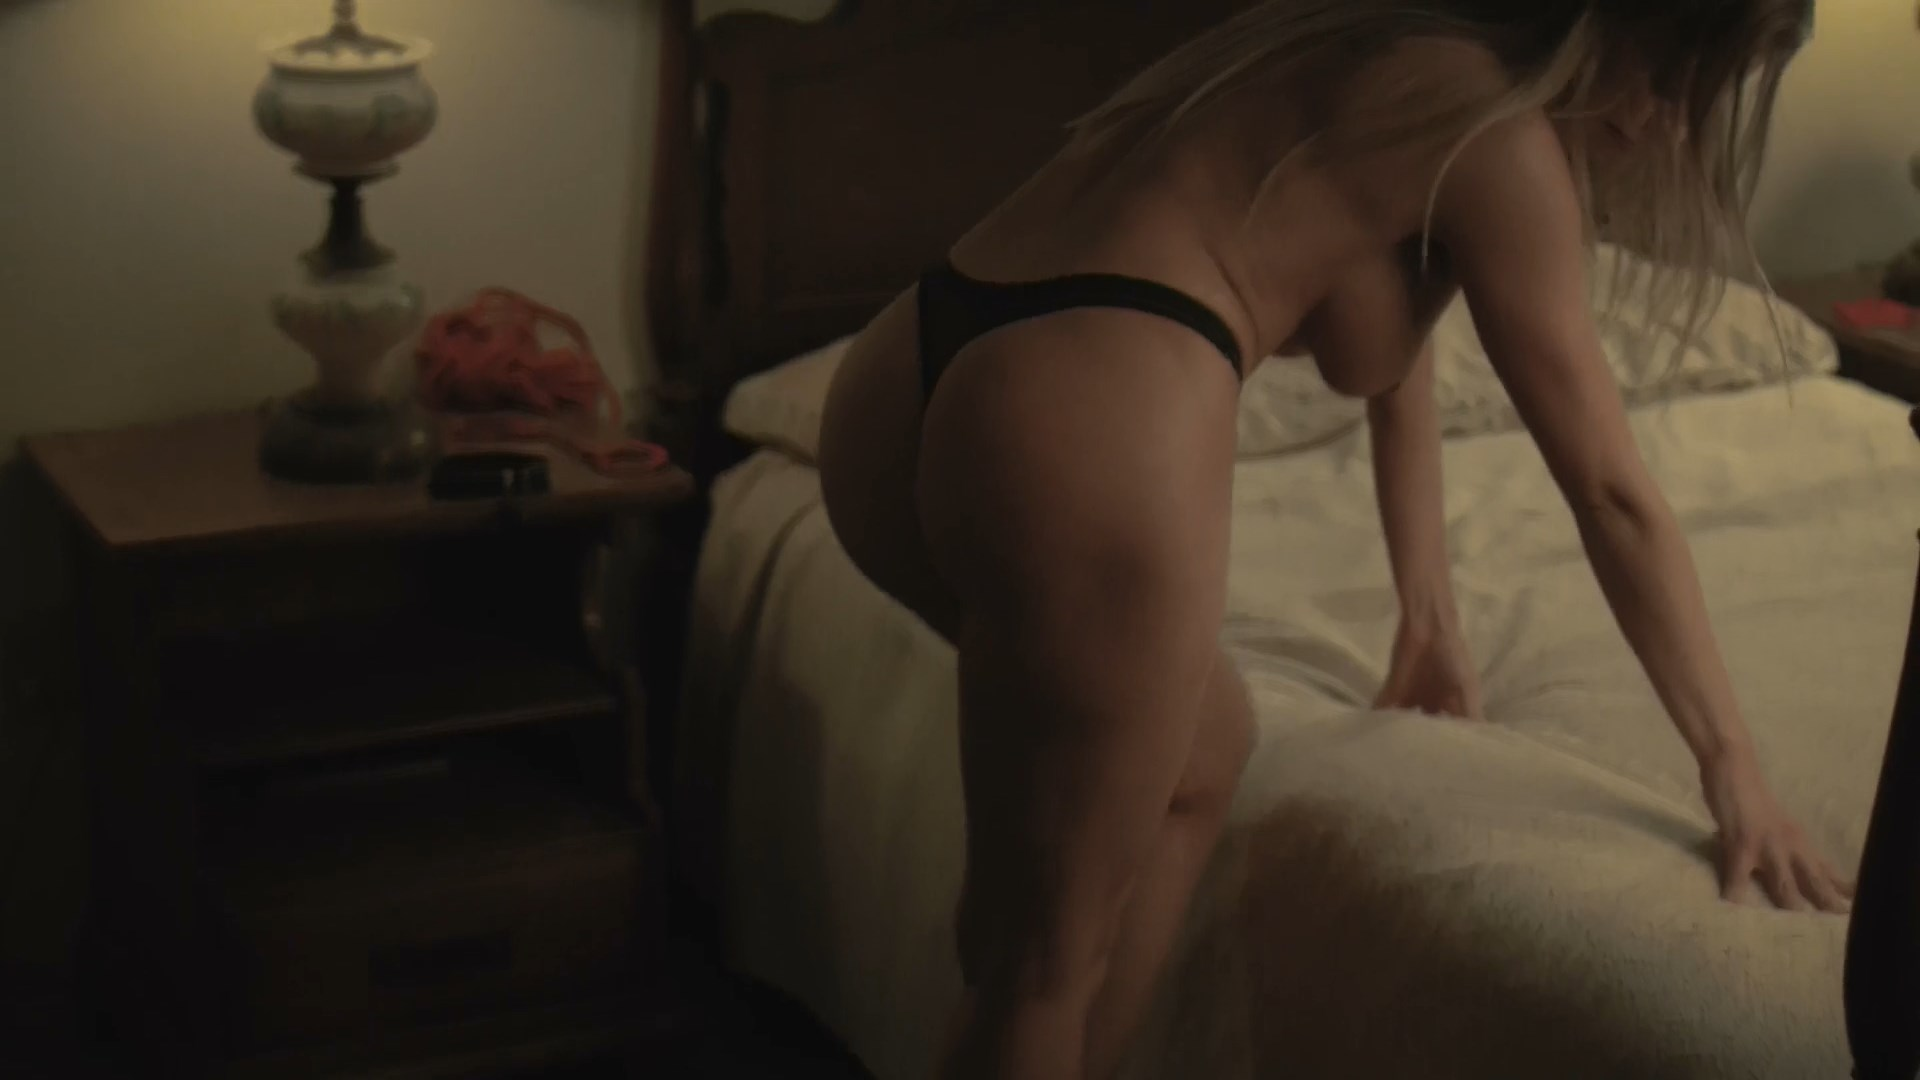 Britney Amber nude, Kleio Valentien nude, Christine Nguyen nude, Cherie DeVille nude, Cody Renee Cameron nude, Rebecca Love sexy - Girls Guns and Blood (2019)